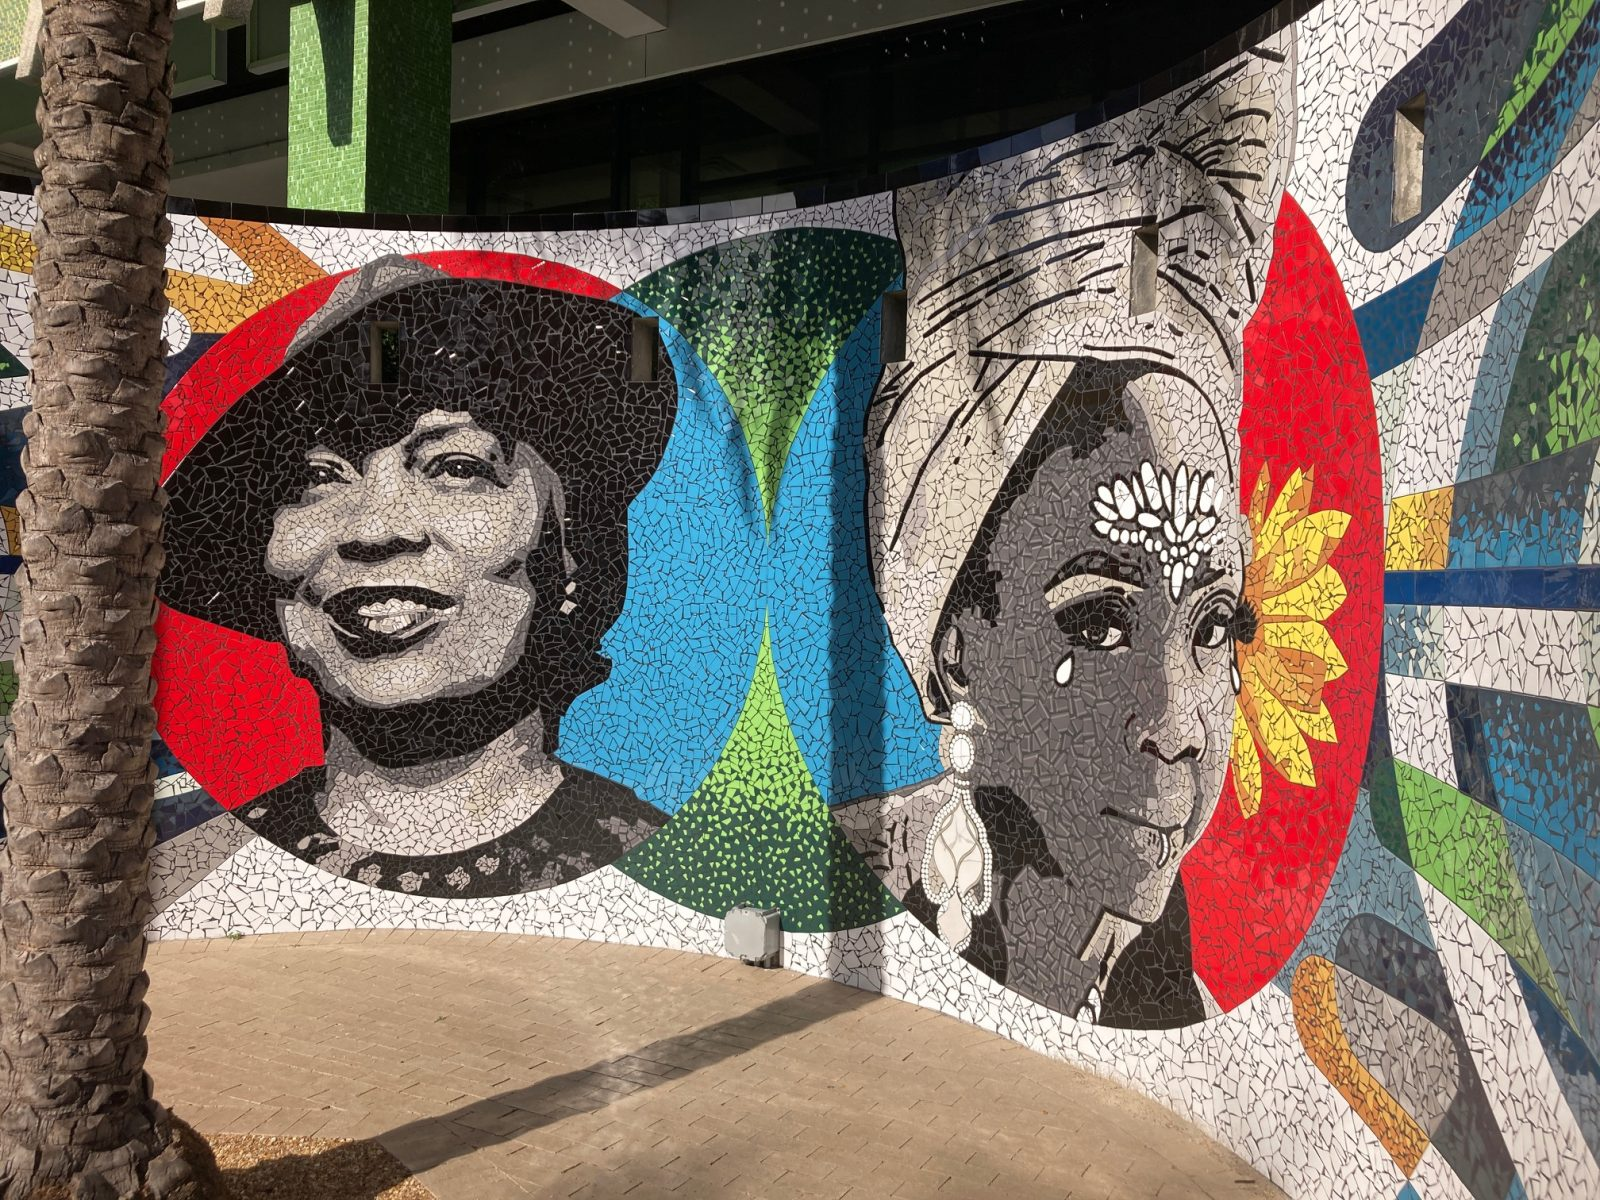 Celso González Quiñones mural outside the Jessie duPont Ball Center in Jacksonville, Florida depicting Ebony Payne-English and Zora Neale Hurston.